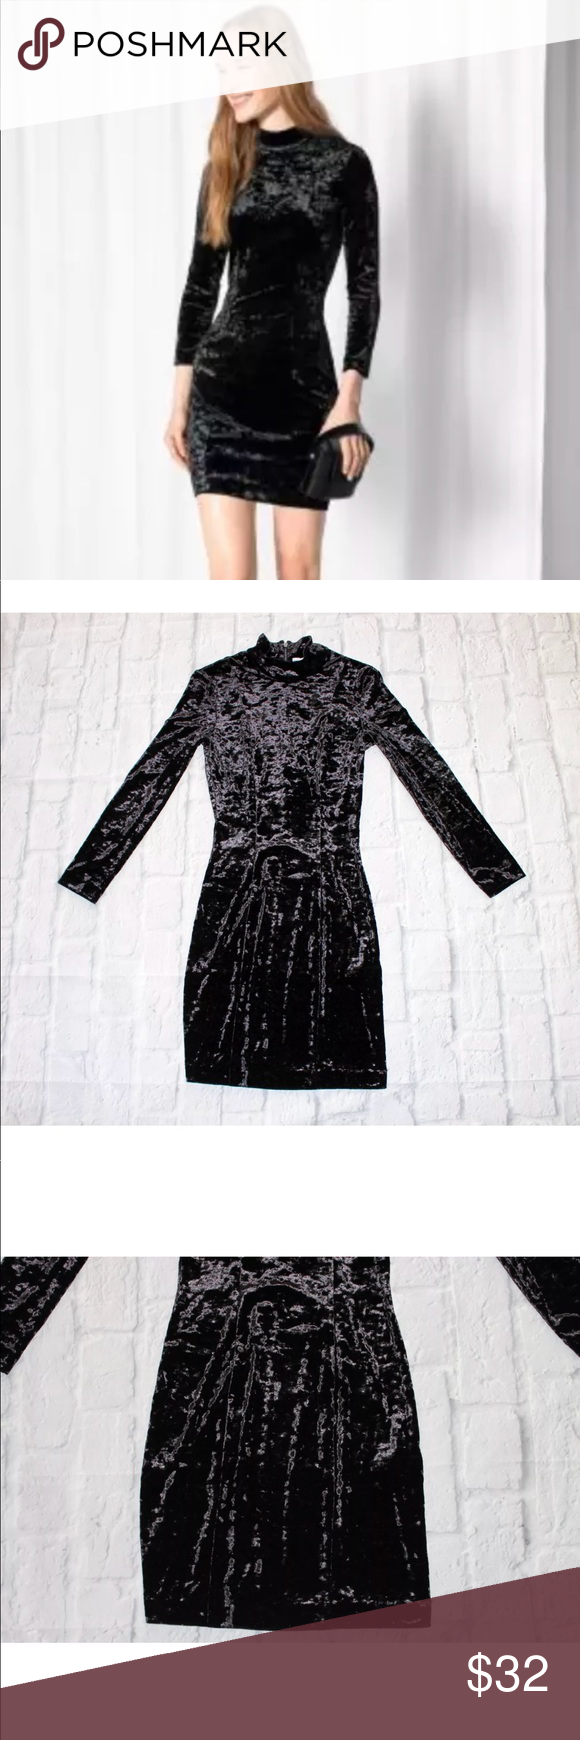 e264e96f988 Other Stories Black Velvet Long Sleeve Dress In excellent condition. Bust  12